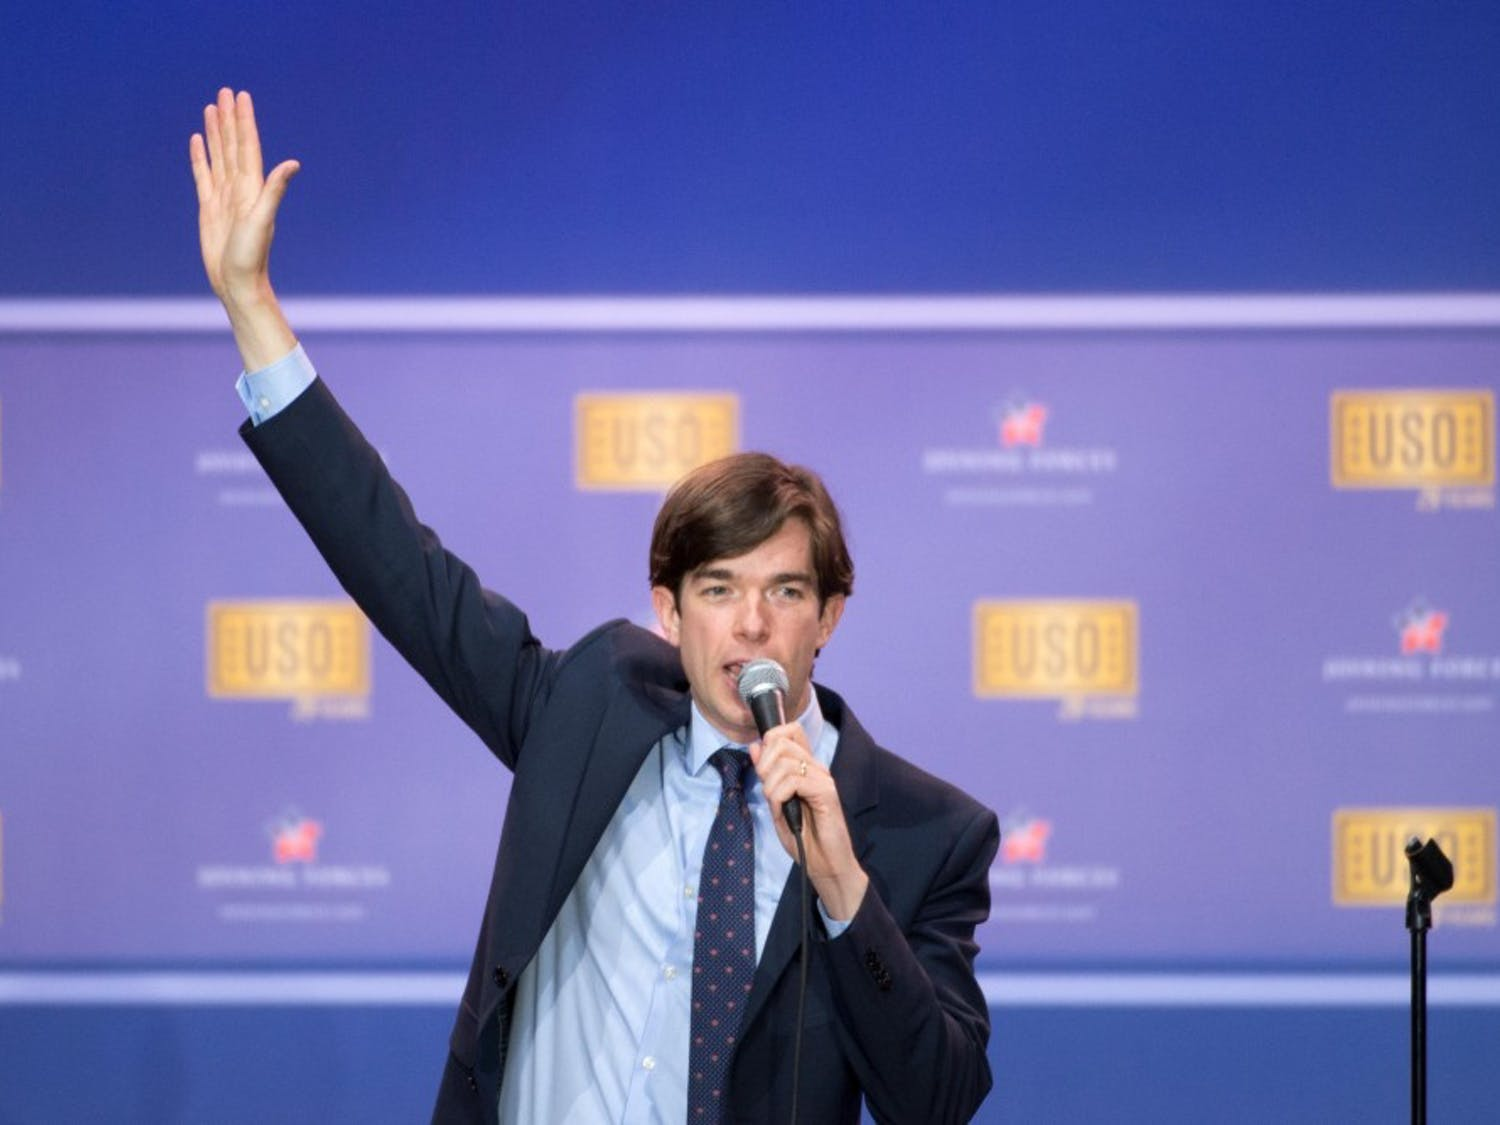 """Comedian John Mulaney has done everything from writing for """"Saturday Night Live"""" to having multiple Netflix specials. He can now add headlining UB's 2019 Student Association Comedy Series to his resume."""